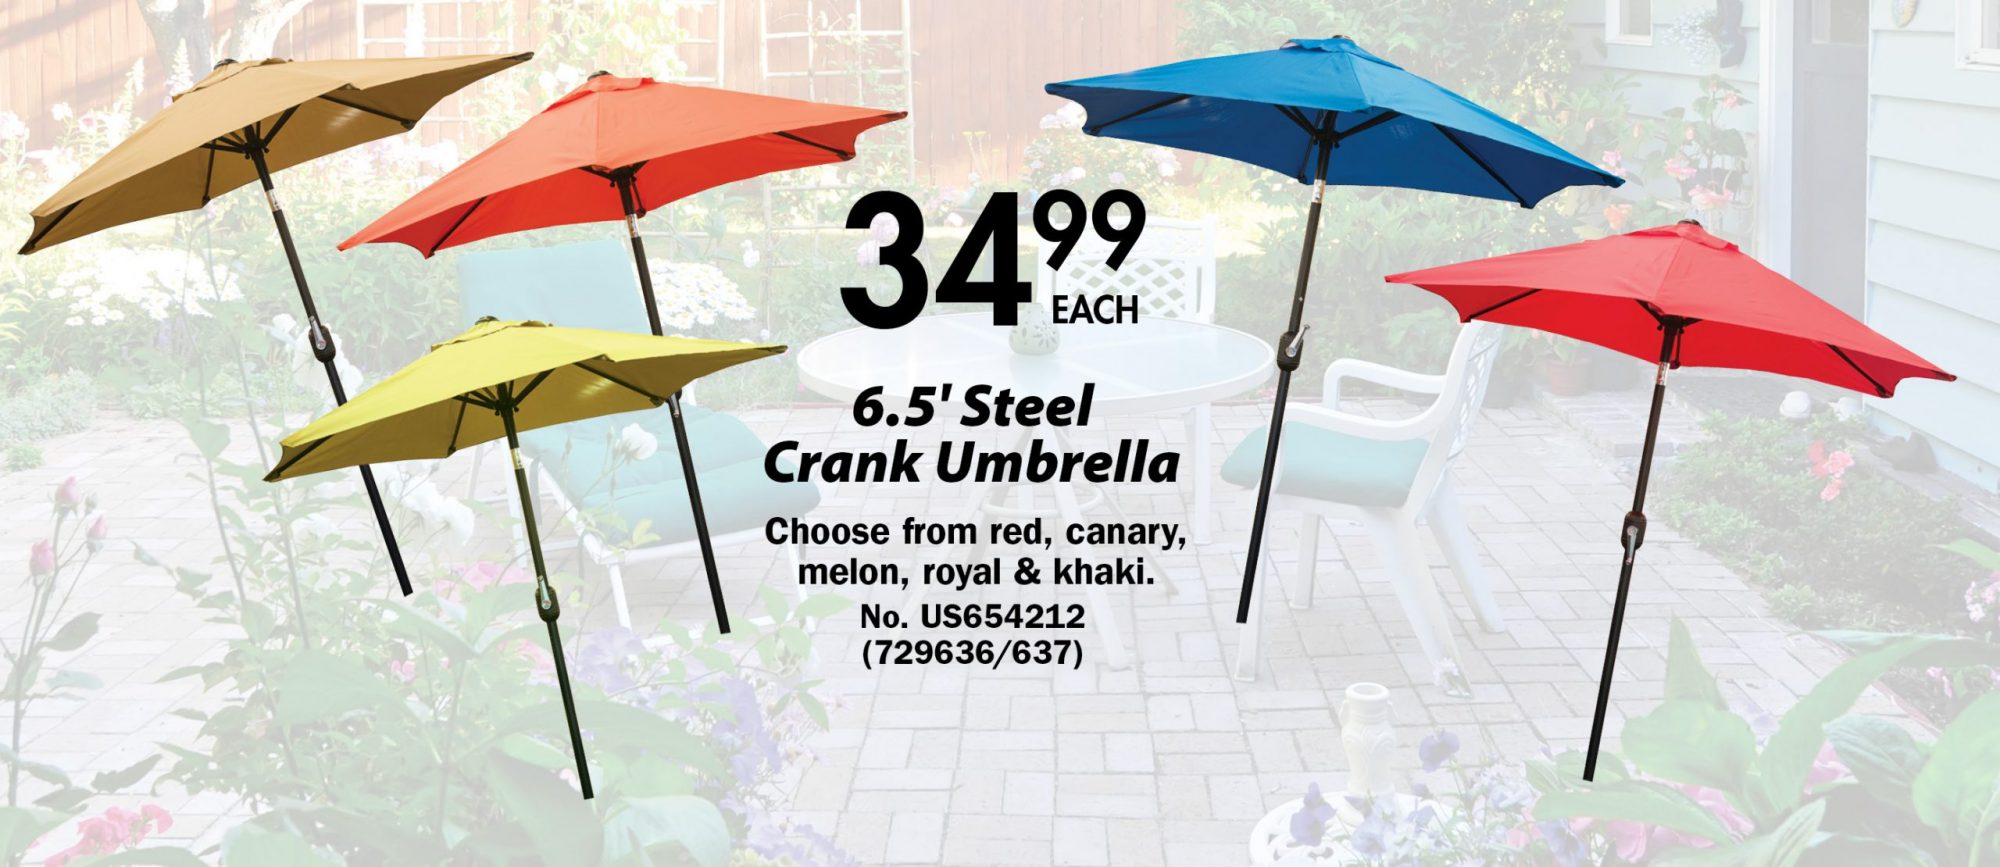 $34.99 each. 6.5' Steel  Crank Umbrella Choose from red, canary,  melon, royal & khaki. No. US654212  (729636/637)